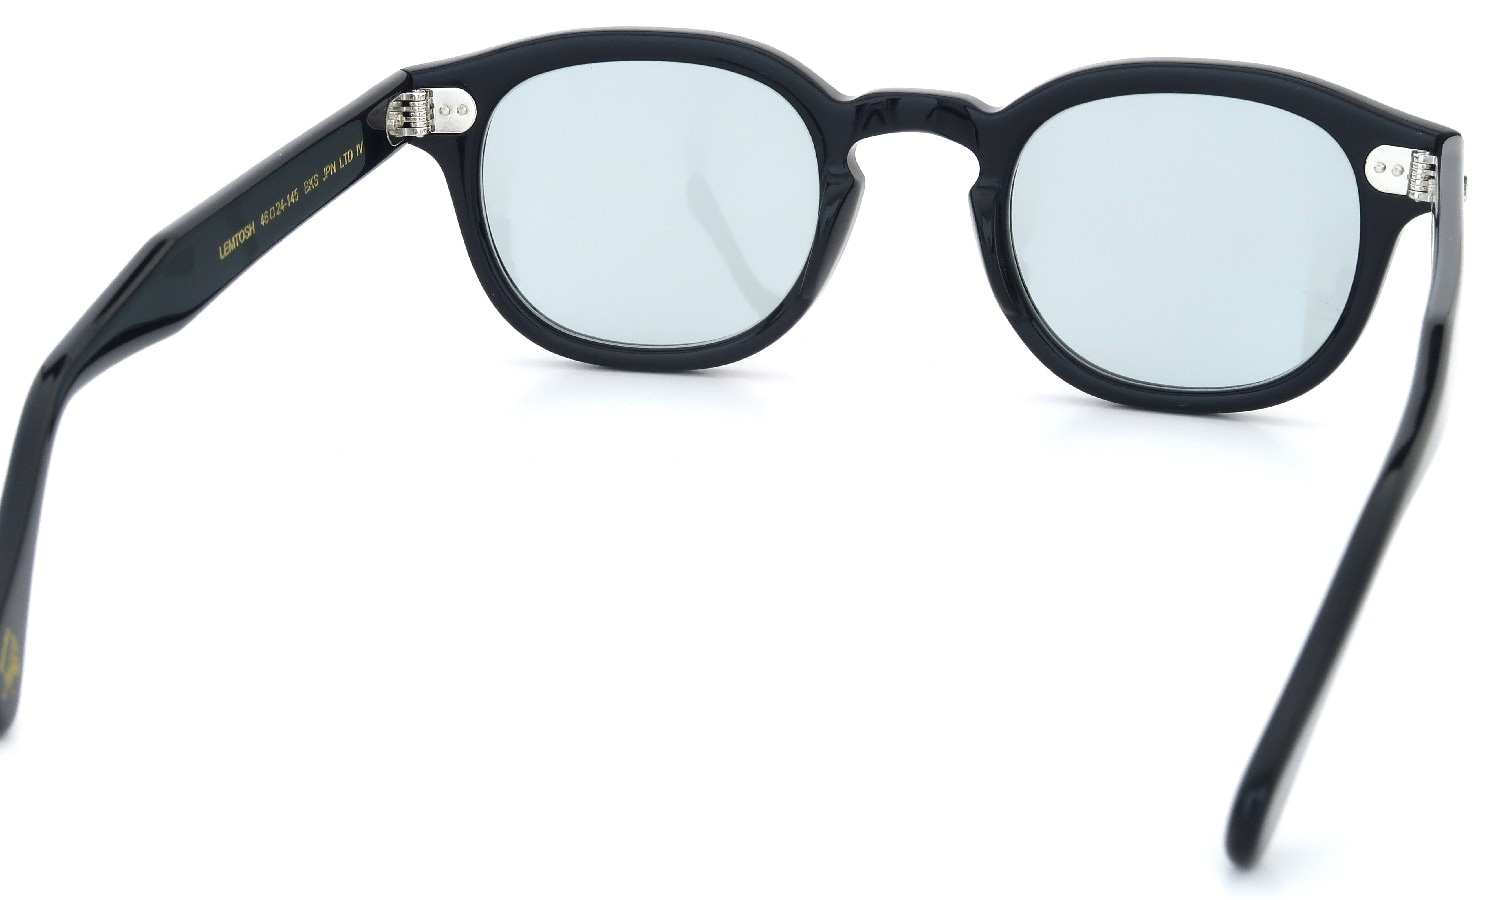 MOSCOT LEMTOSH BKS 46 4th-JPN-LTD